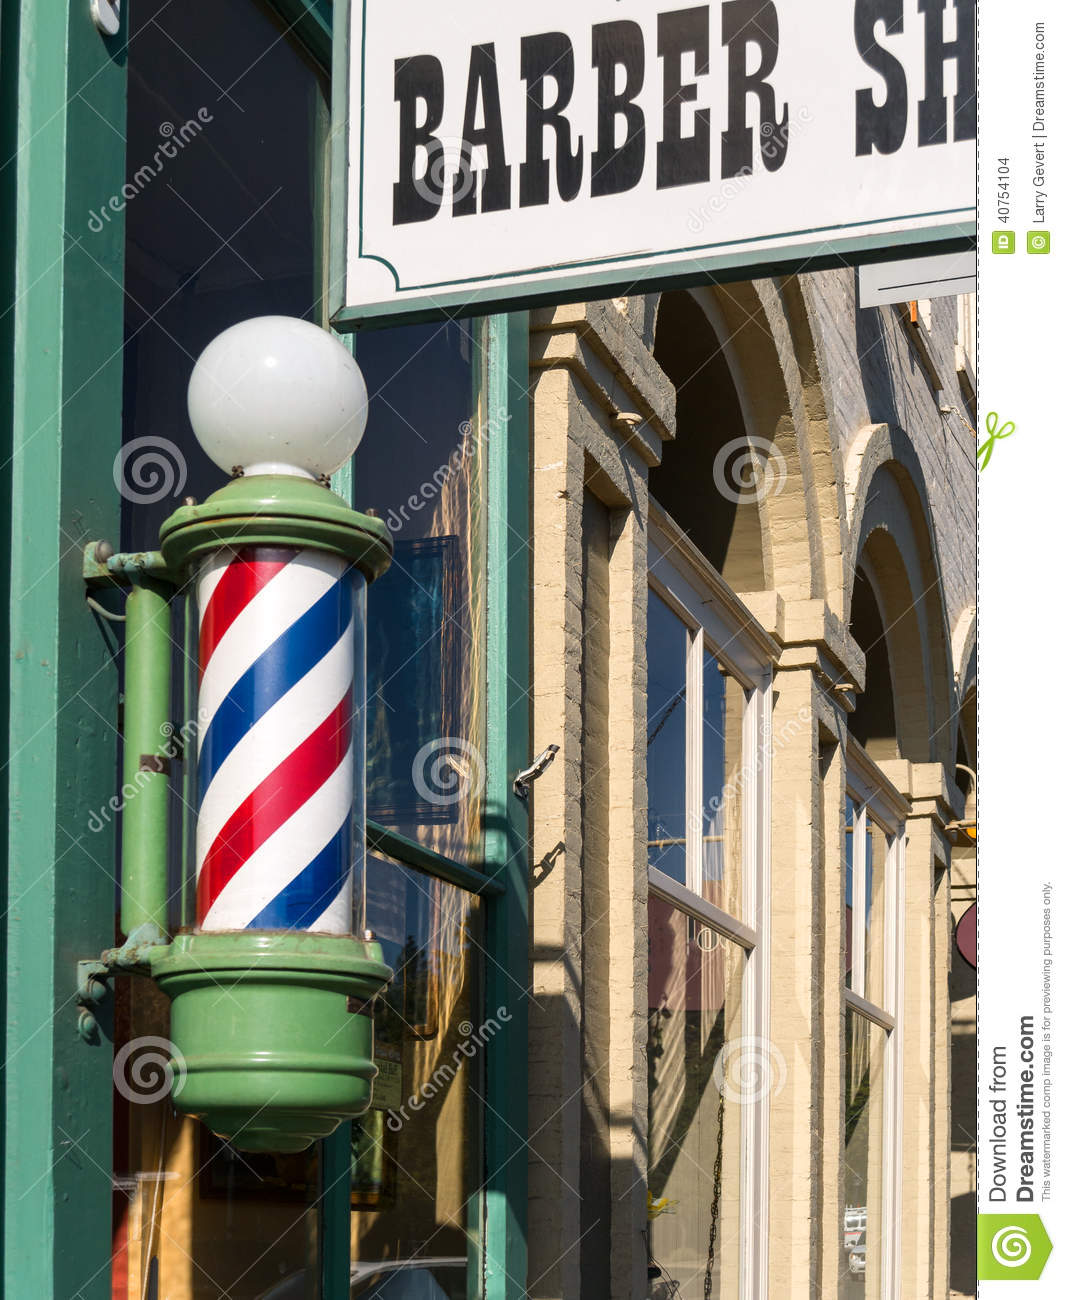 Polo e sinal de Barber Shop